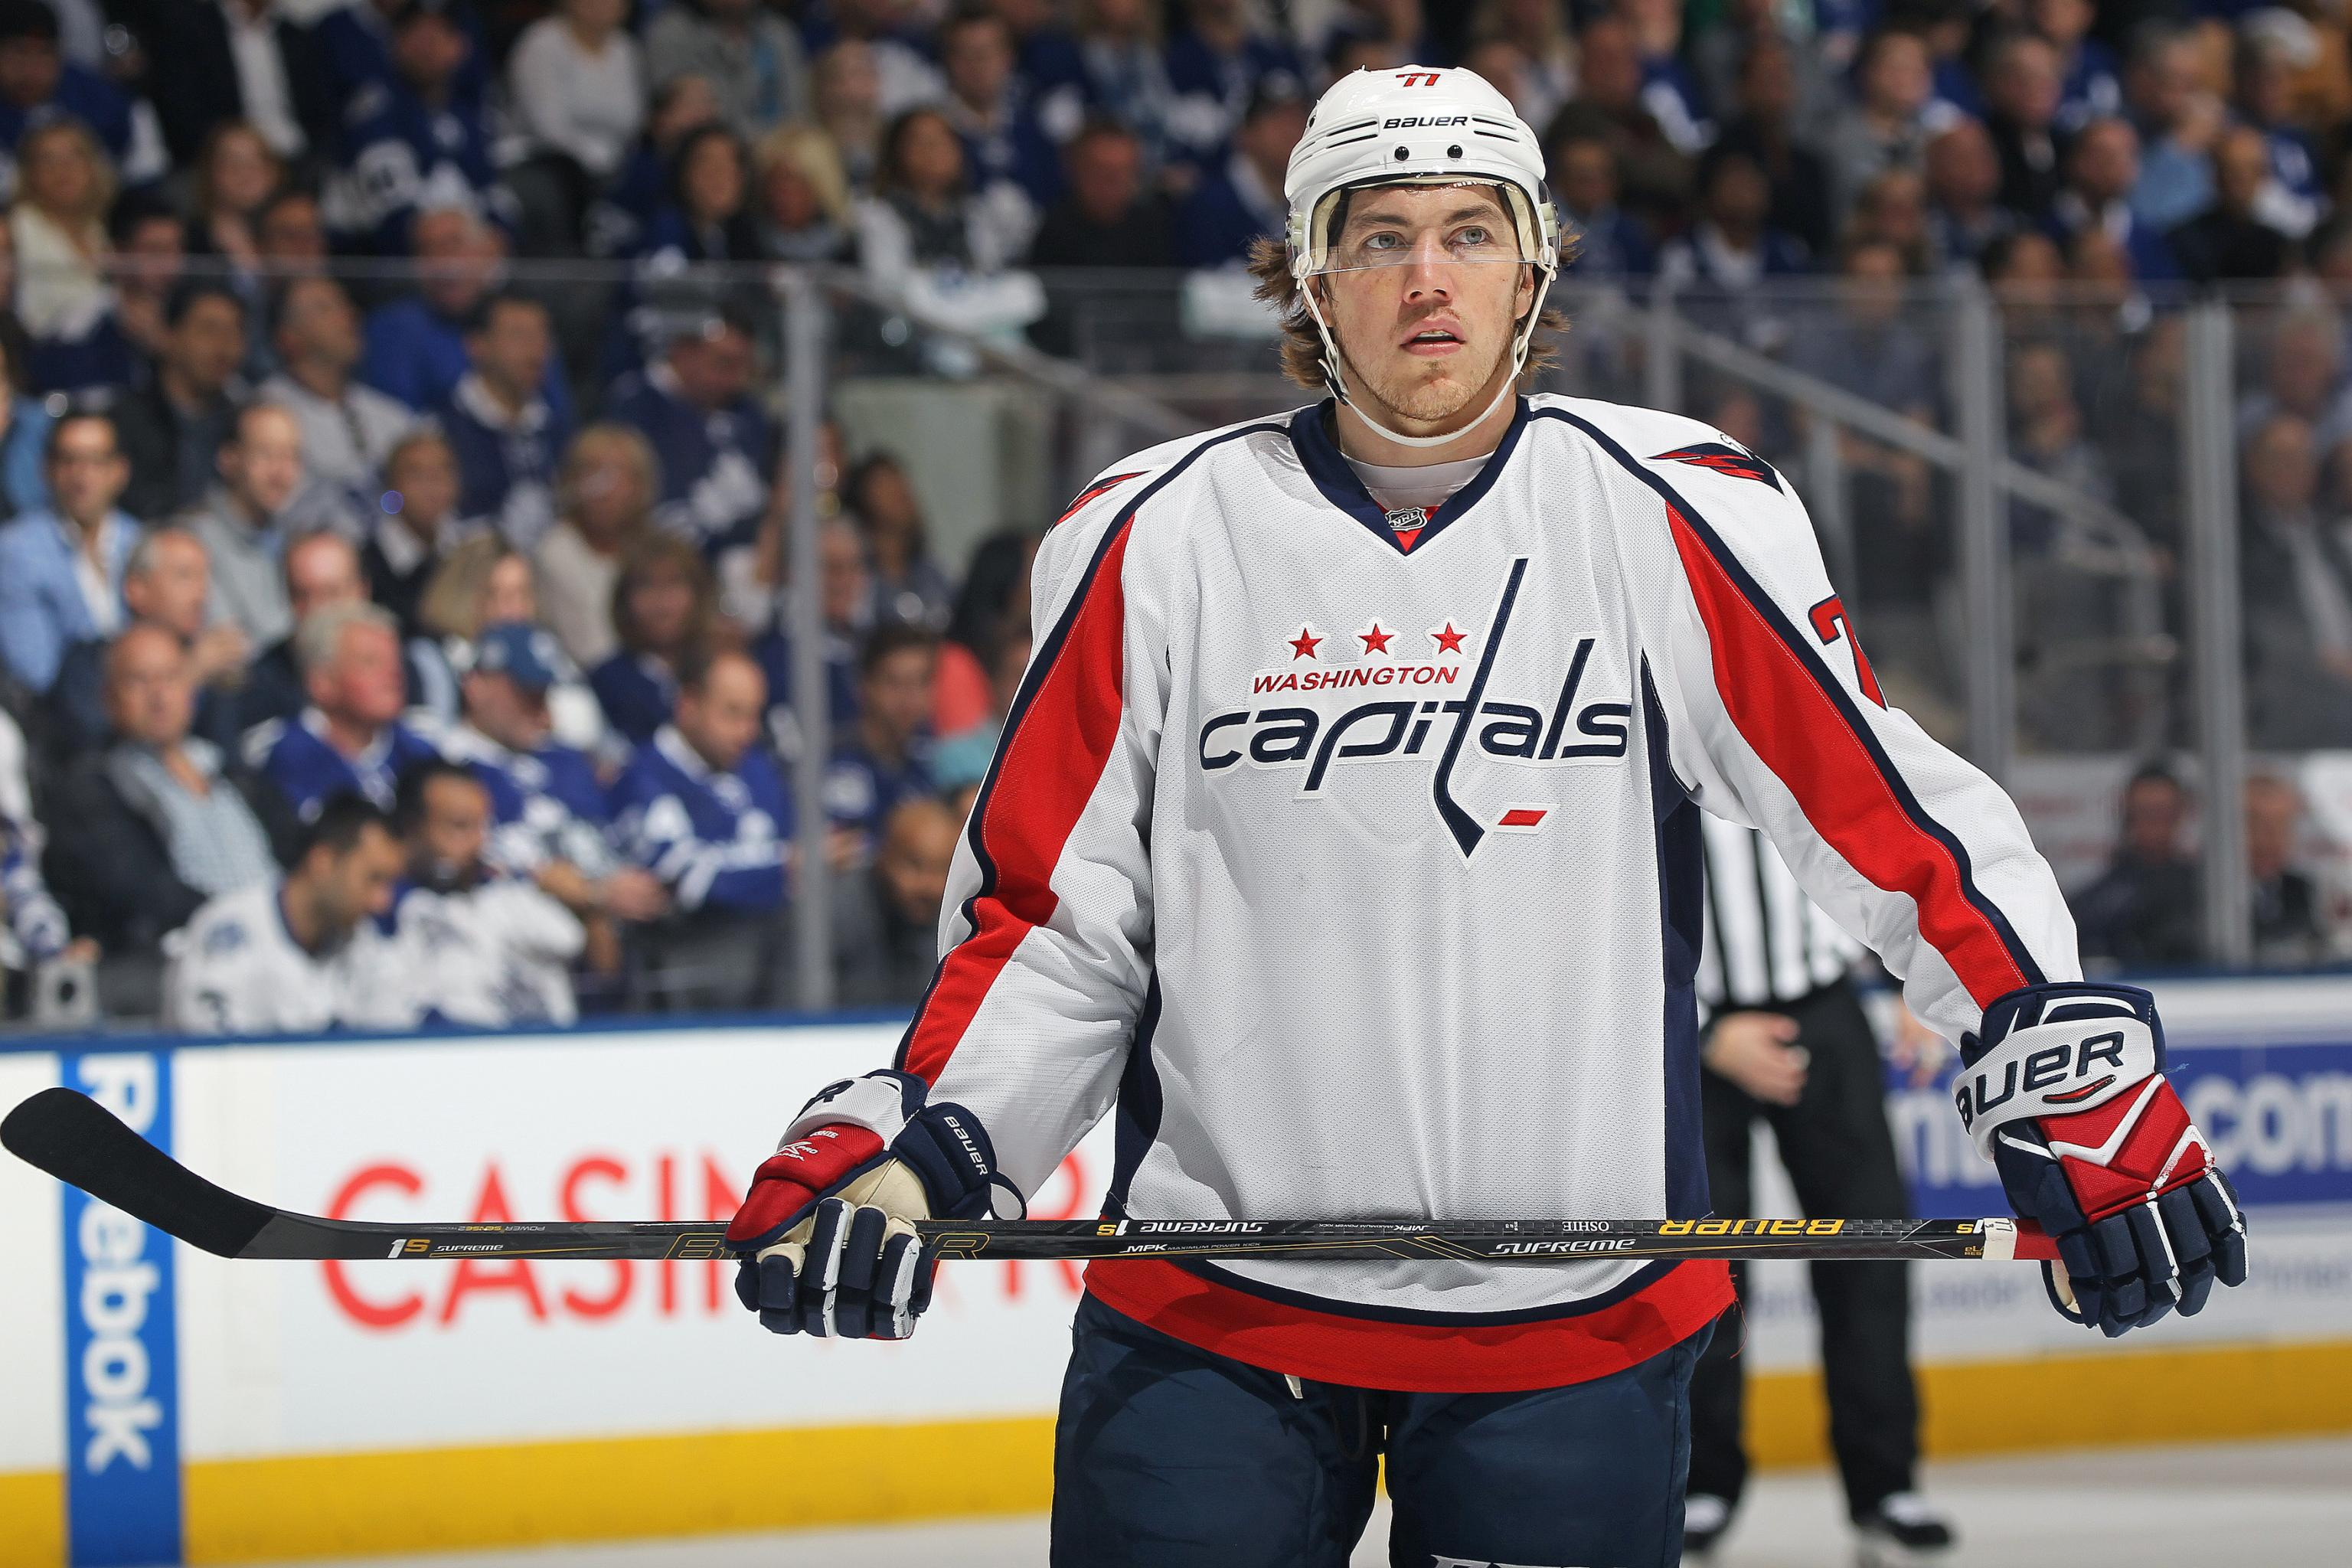 timeless design c7ea0 5f45f T.J. Oshie Re-Signs with Washington Capitals on 8-Year ...